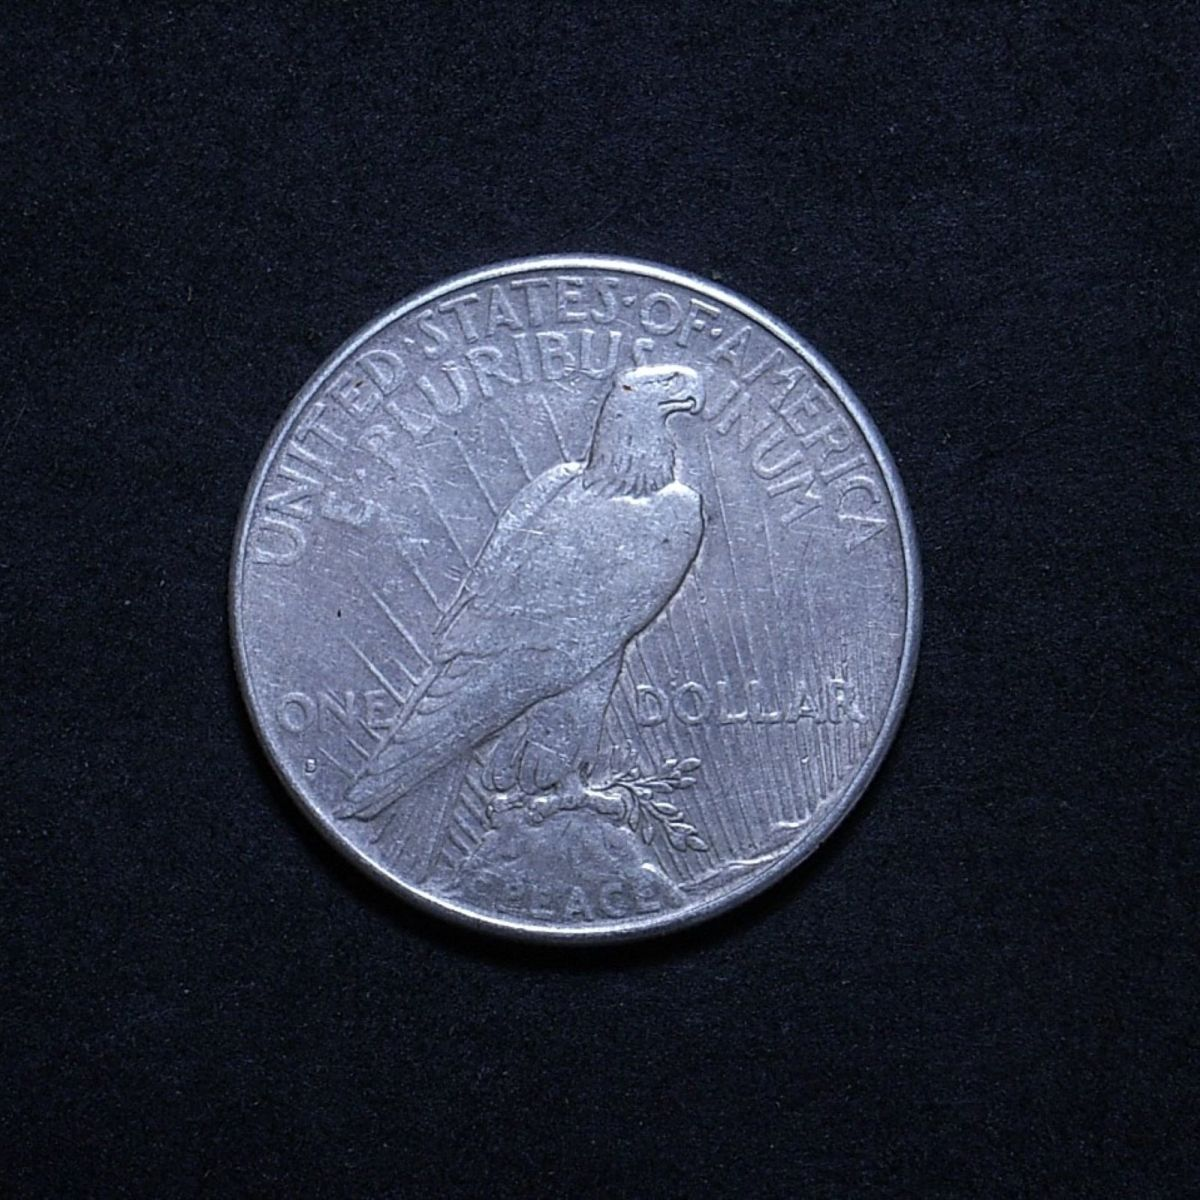 US Peace Dollar 1928-S reverse showing overall appearance